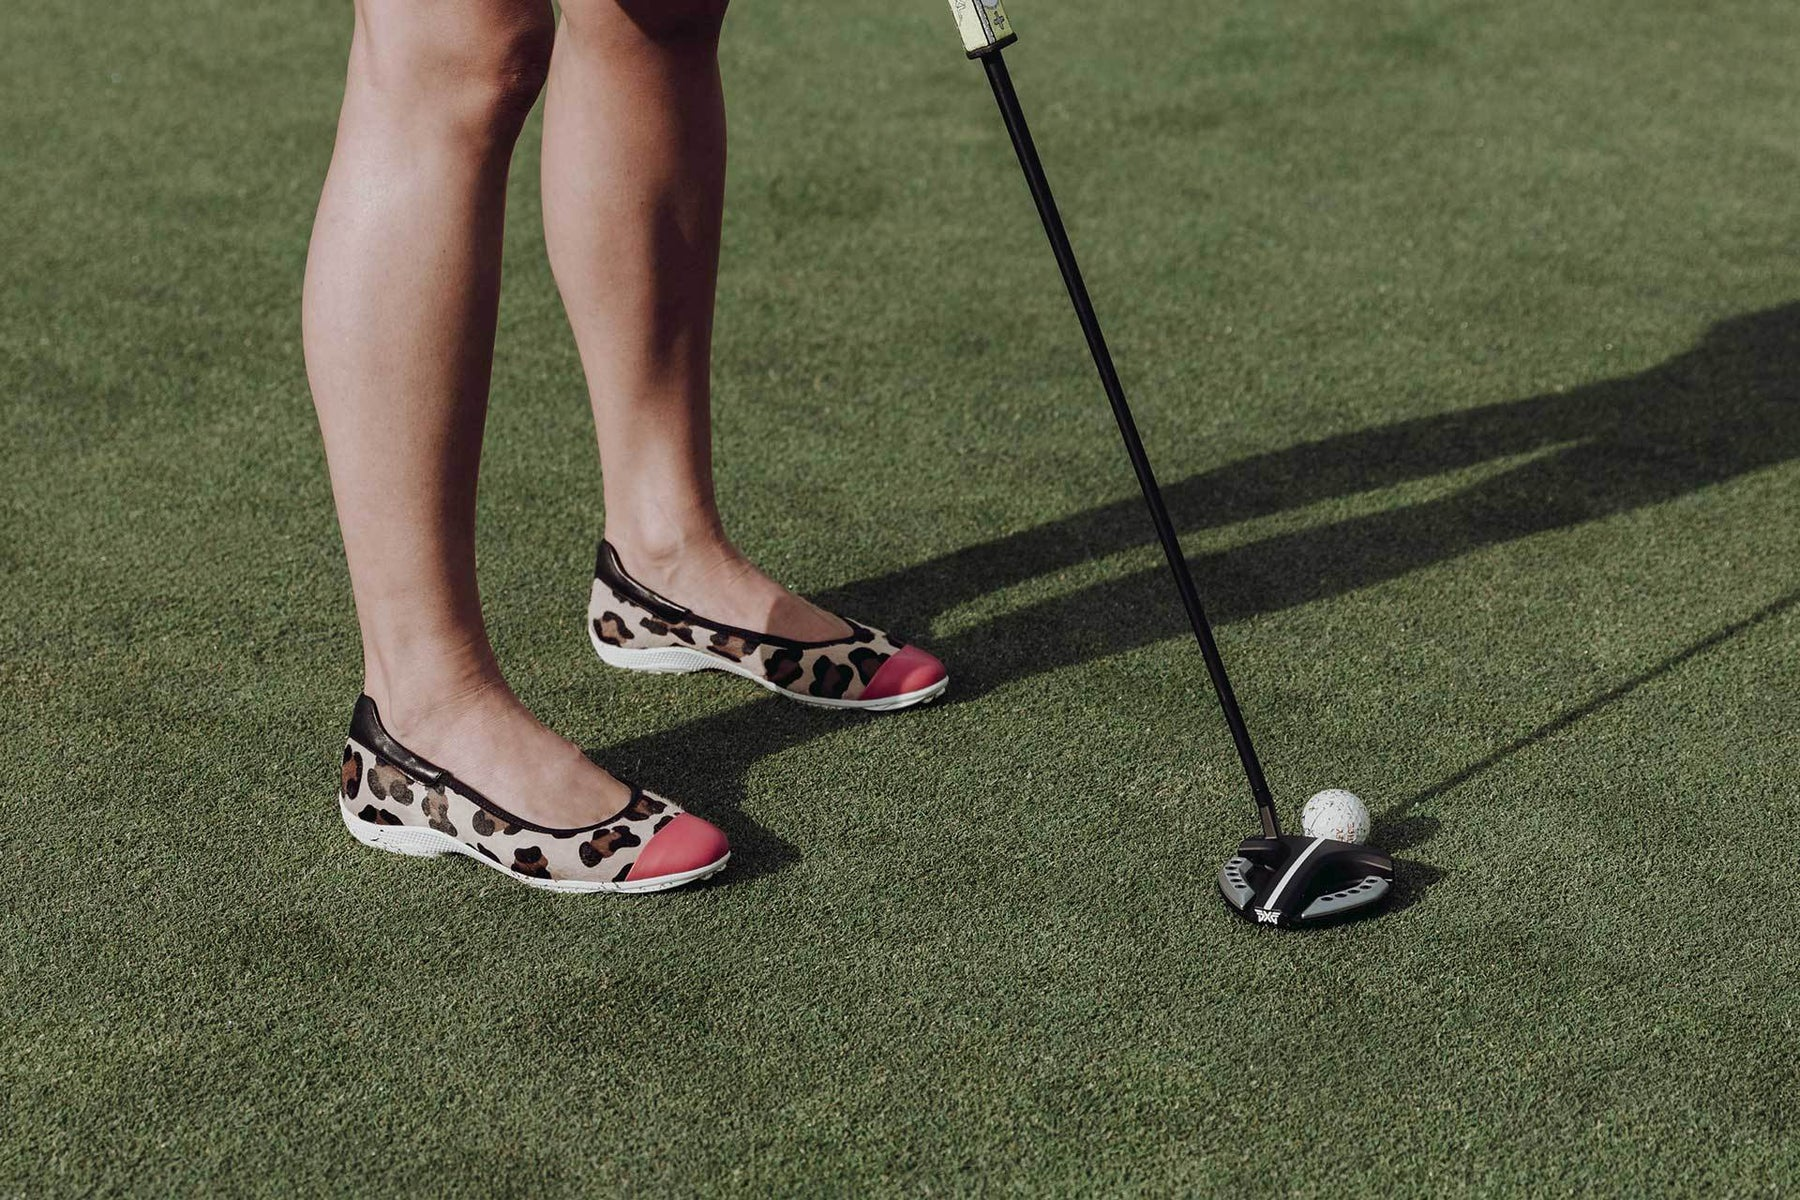 Ladies Golf Shoes | Runway Leopard | Royal Albartross Runway Leopard